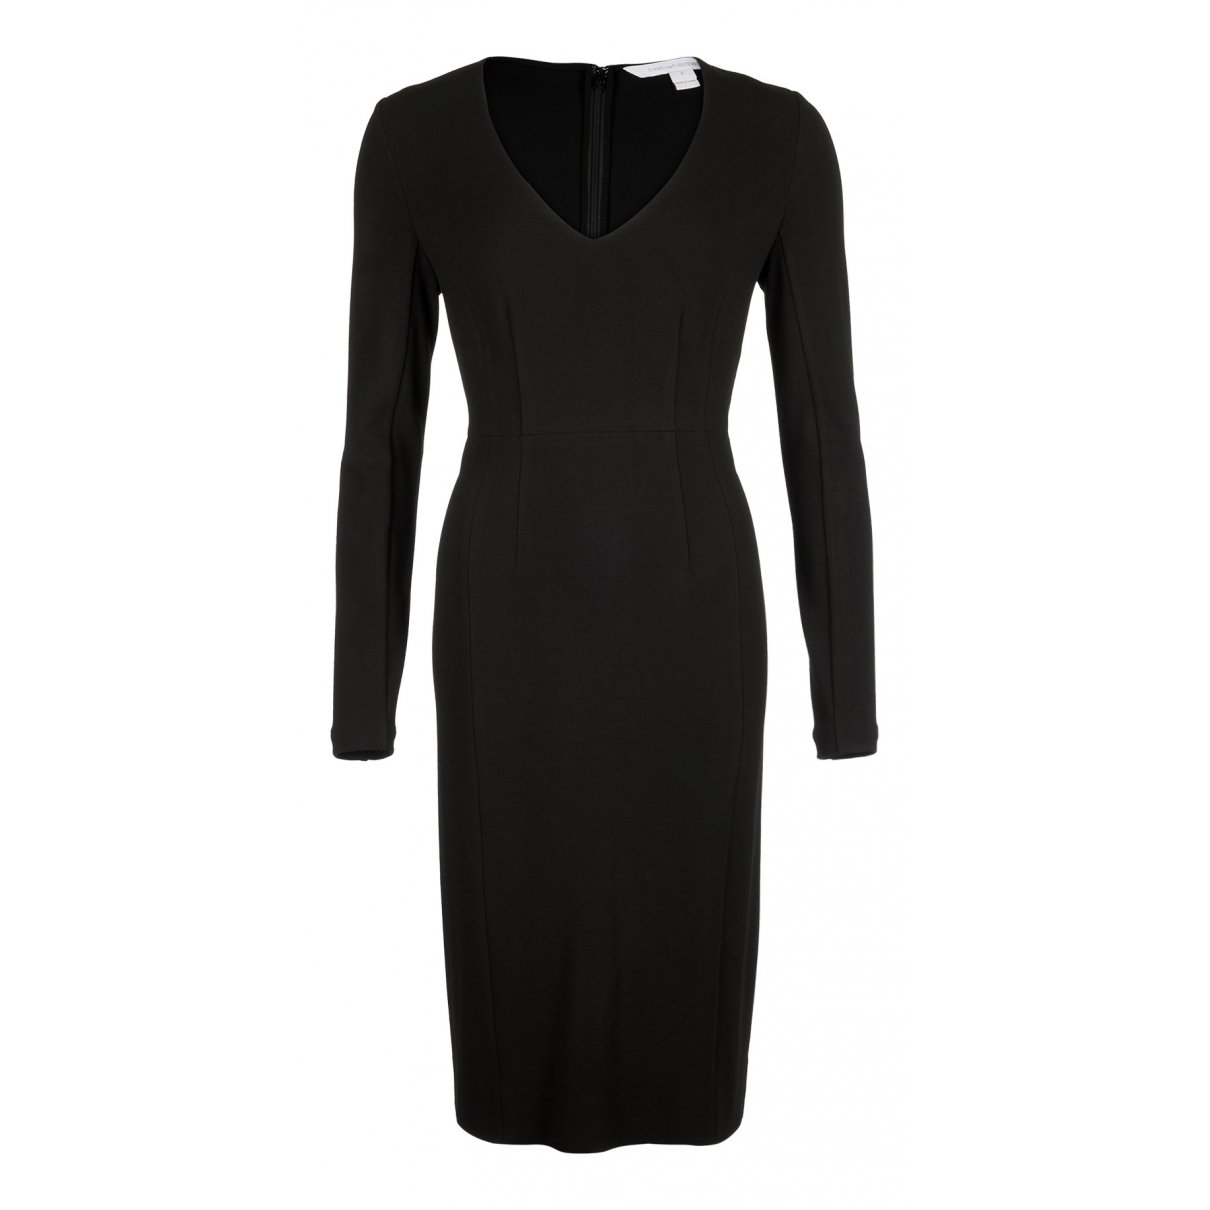 Diane Von Furstenberg N Black dress for Women 10 UK